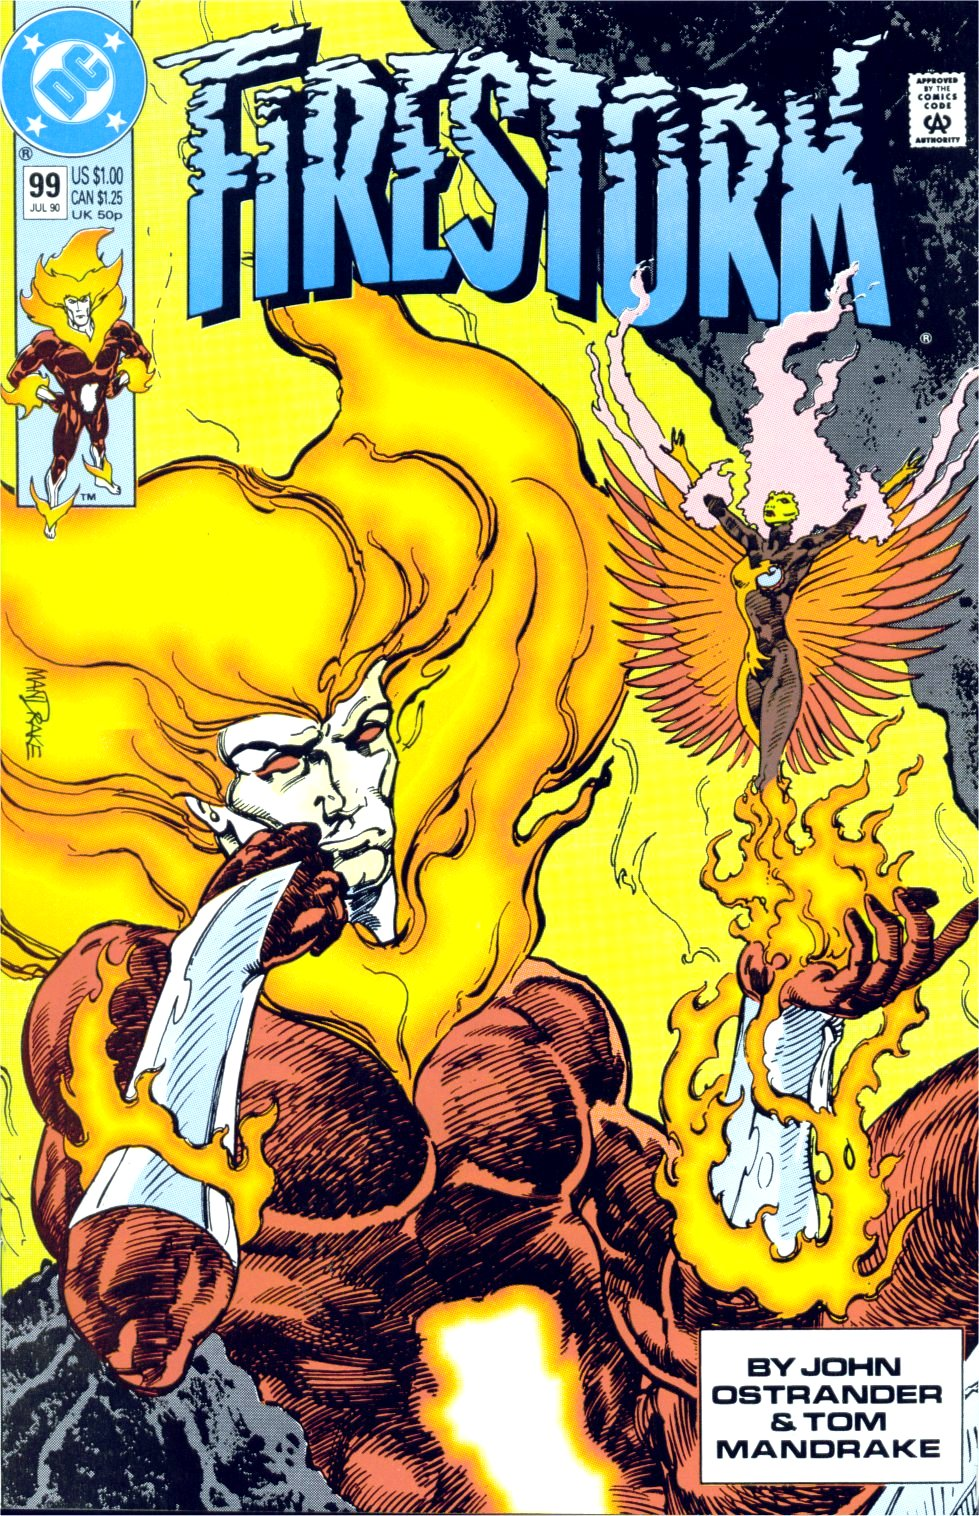 Firestorm, the Nuclear Man Issue #99 #35 - English 1